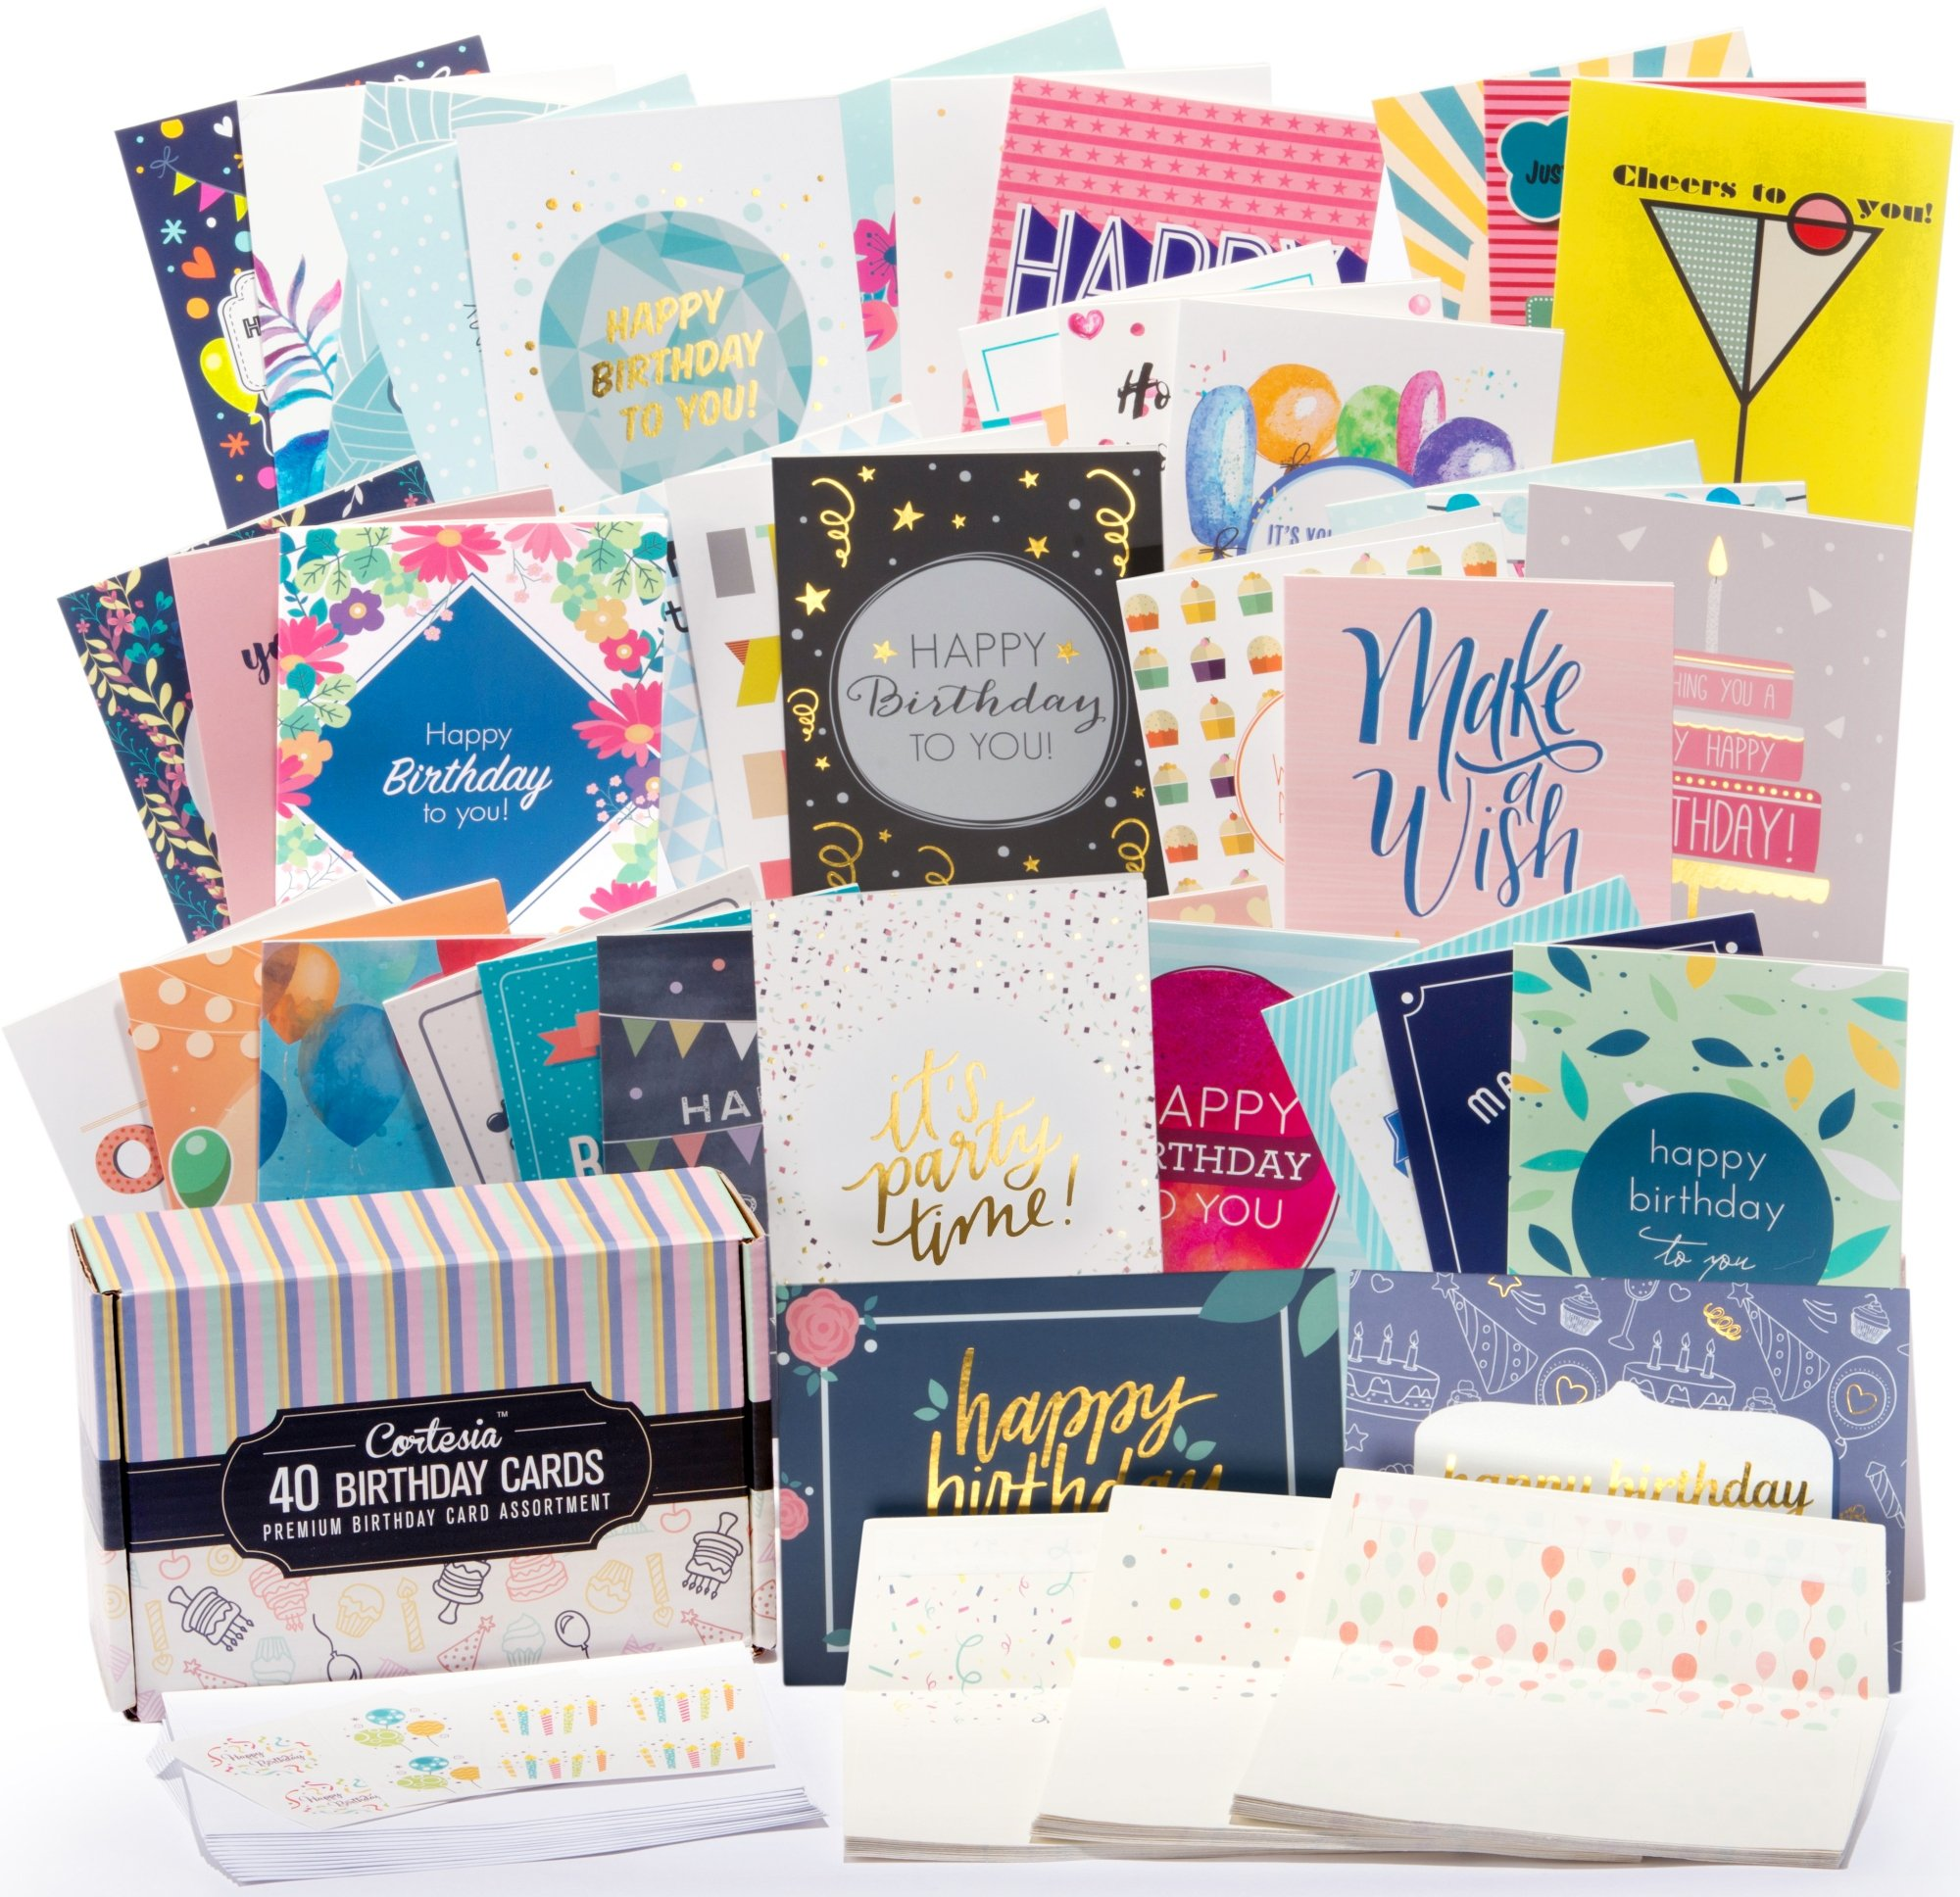 Happy Birthday Cards Bulk Premium Assortment - 40 UNIQUE DESIGNS, GOLD EMBELLISHMENTS, ENVELOPES WITH PATTERNS. The Ultimate Boxed Set of Bday Cards. by Cortesia